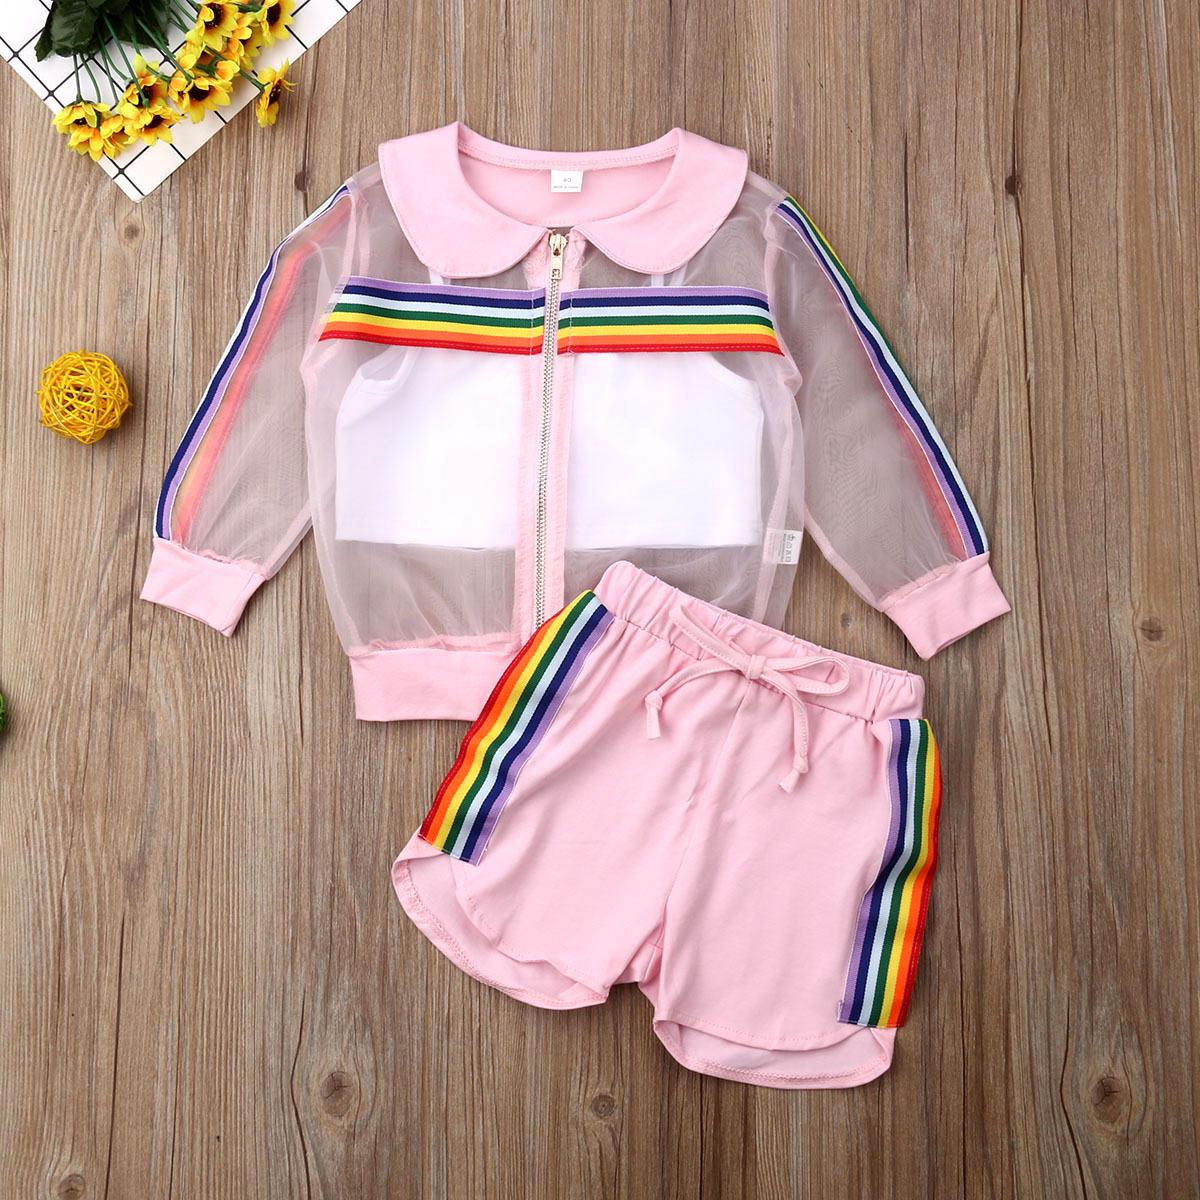 Vest Outfit Short-Pants Clothes-Summer-Set Rainbow-Coat Organza Toddler Baby-Girl Kids title=